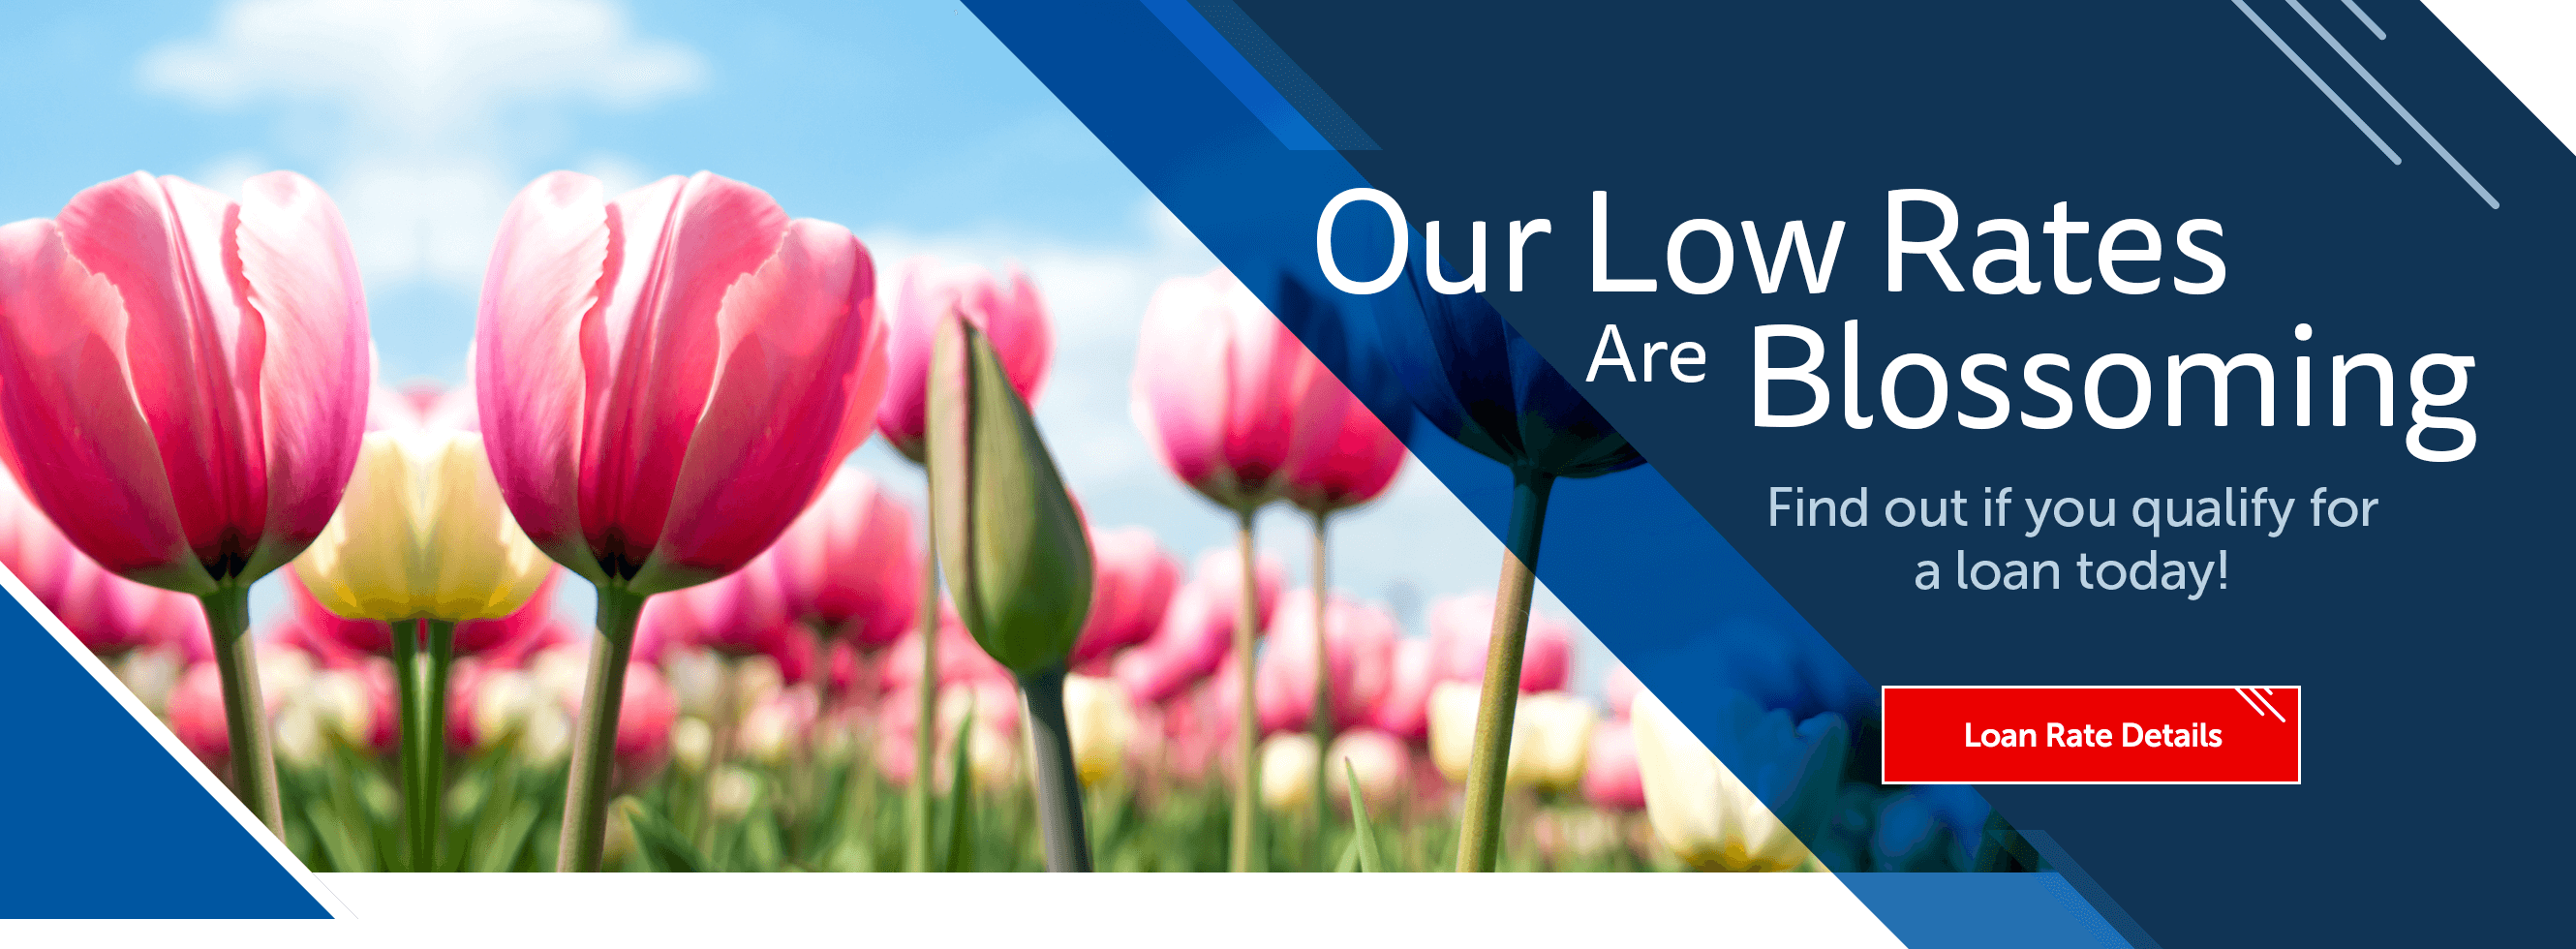 Our Low Rates Are Blossoming. Find out if you qualify for a loan today! Loan Rate Details